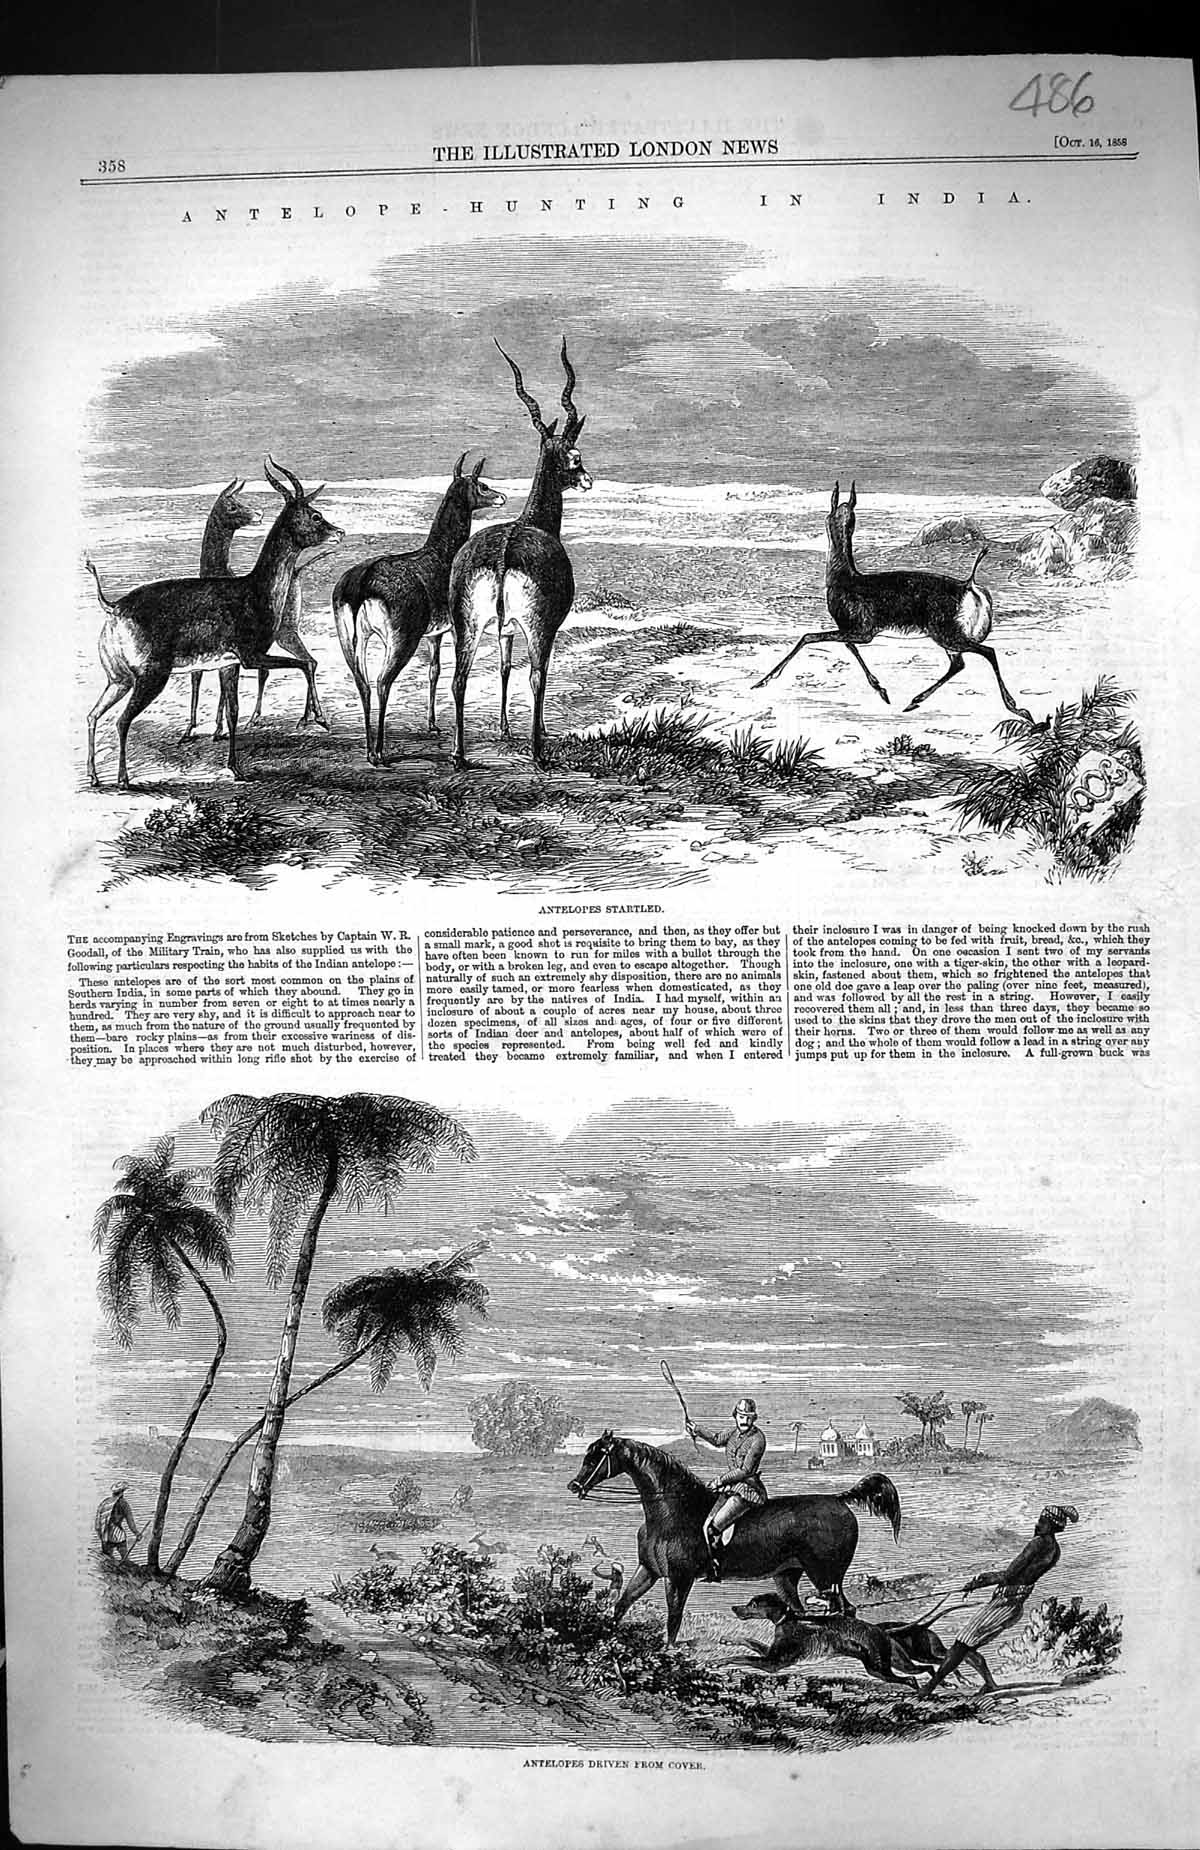 Old-1858-Antelope-Hunting-India-Driving-From-Cover-Sport-Huntsman-Hor-Victorian